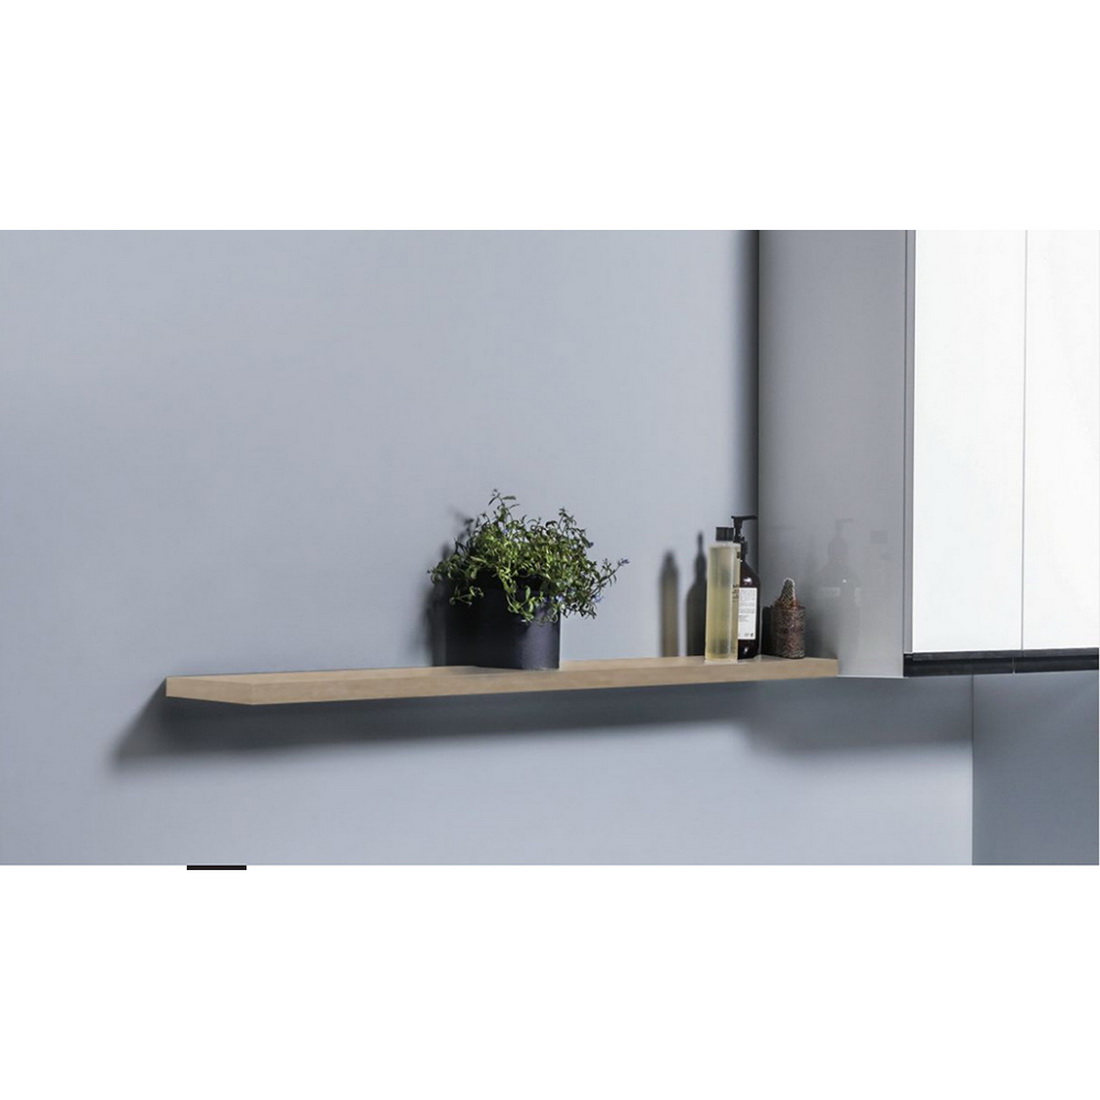 600 x 150 x 25mm Wall Hung Floating Laundry Shelf Timber Veneer